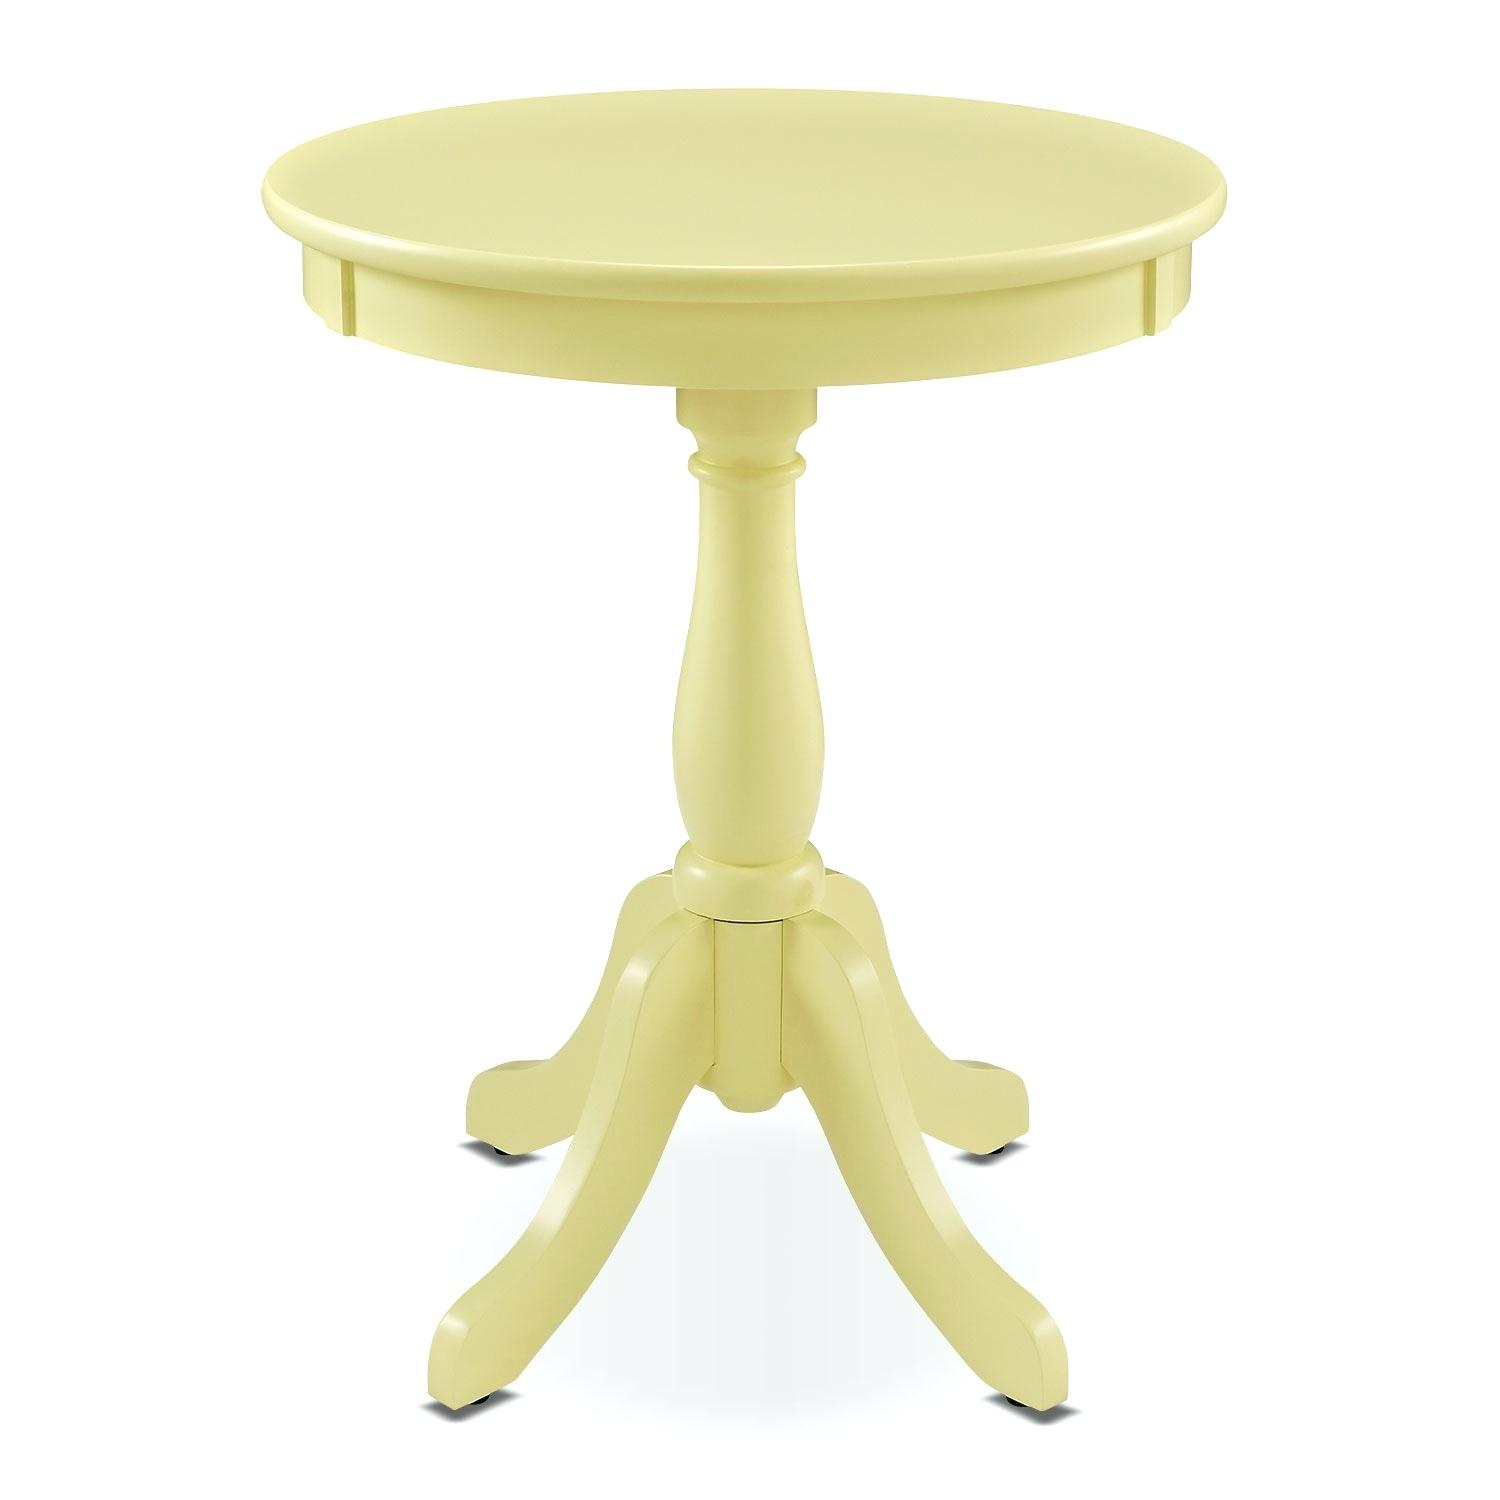 yellow side table nesting round iron stools set two accent and occasional furniture target threshold gold umbrella base folding patio end extra wide sofa baroque chair cool lamps